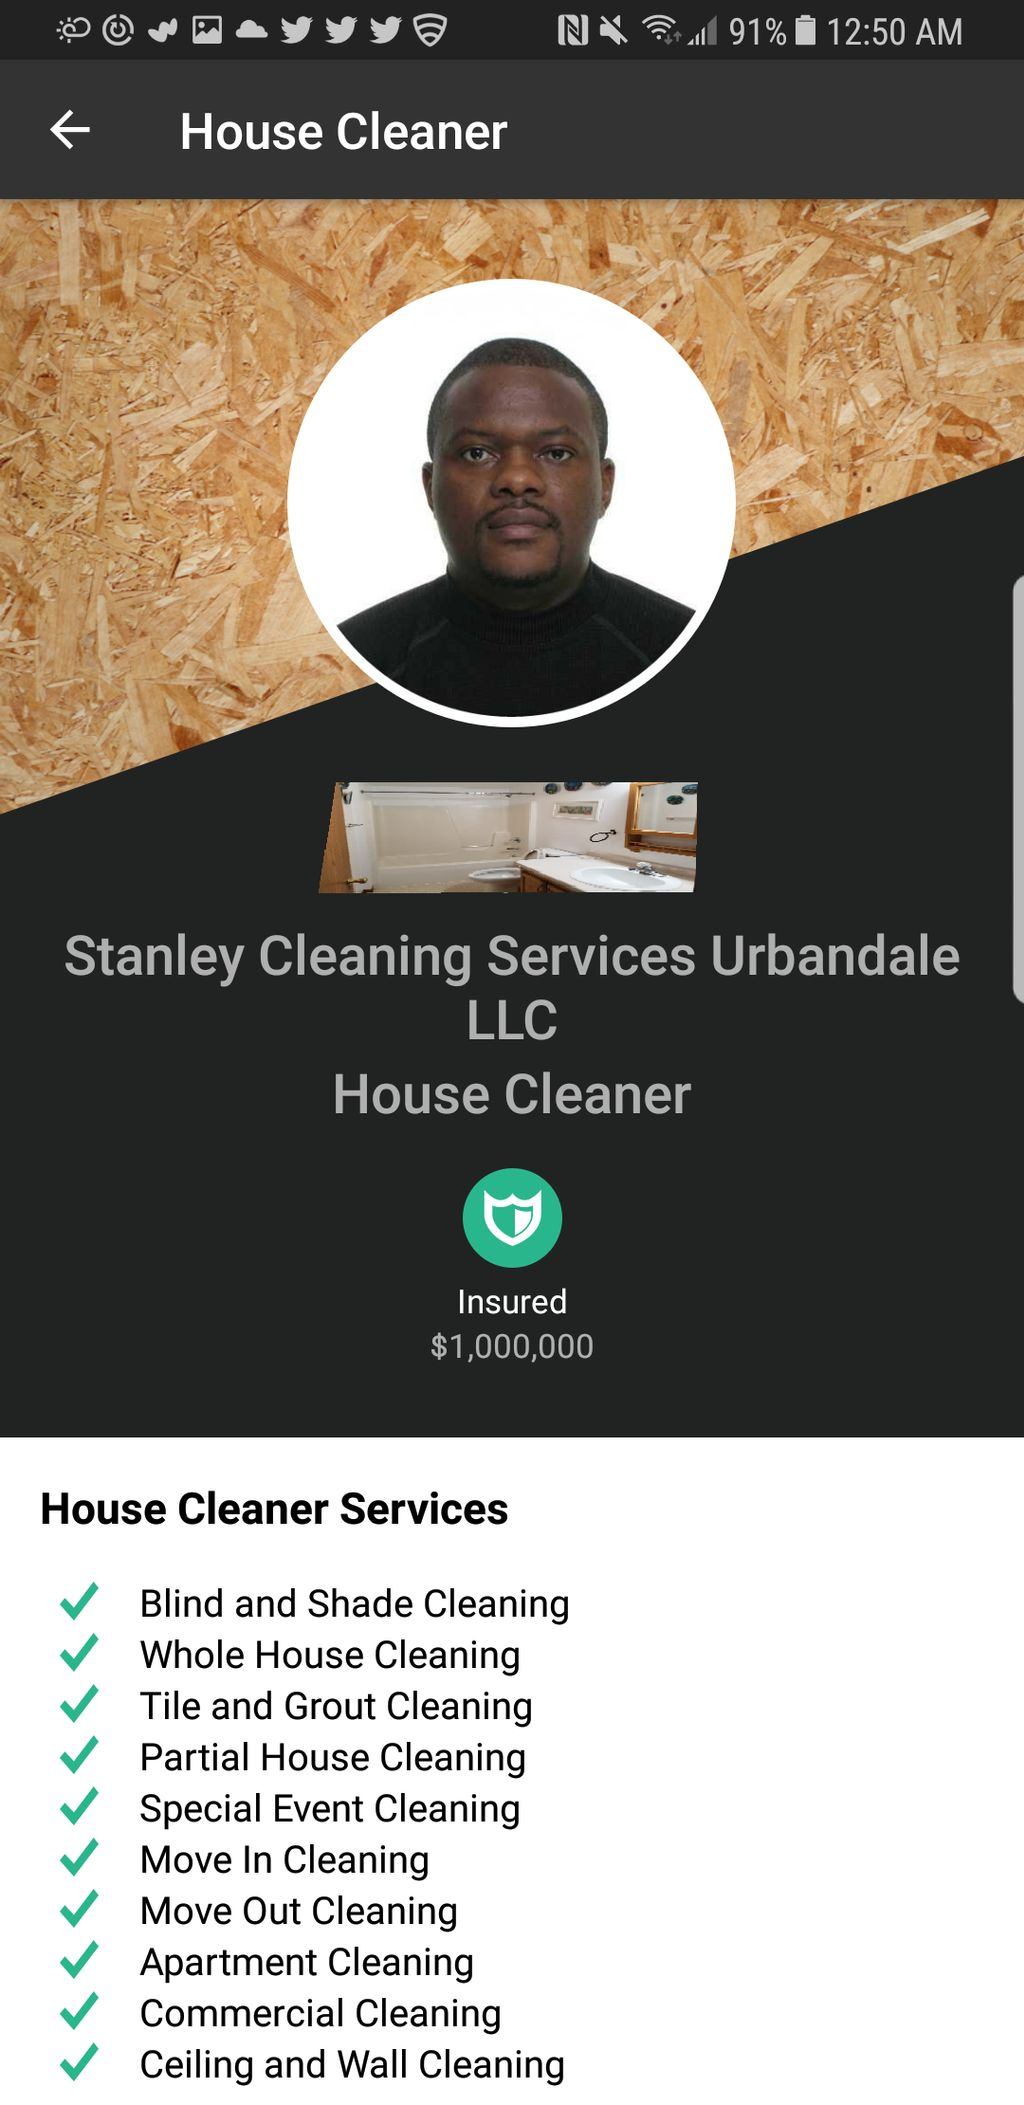 Stanley Cleaning Services Urbandale LLC